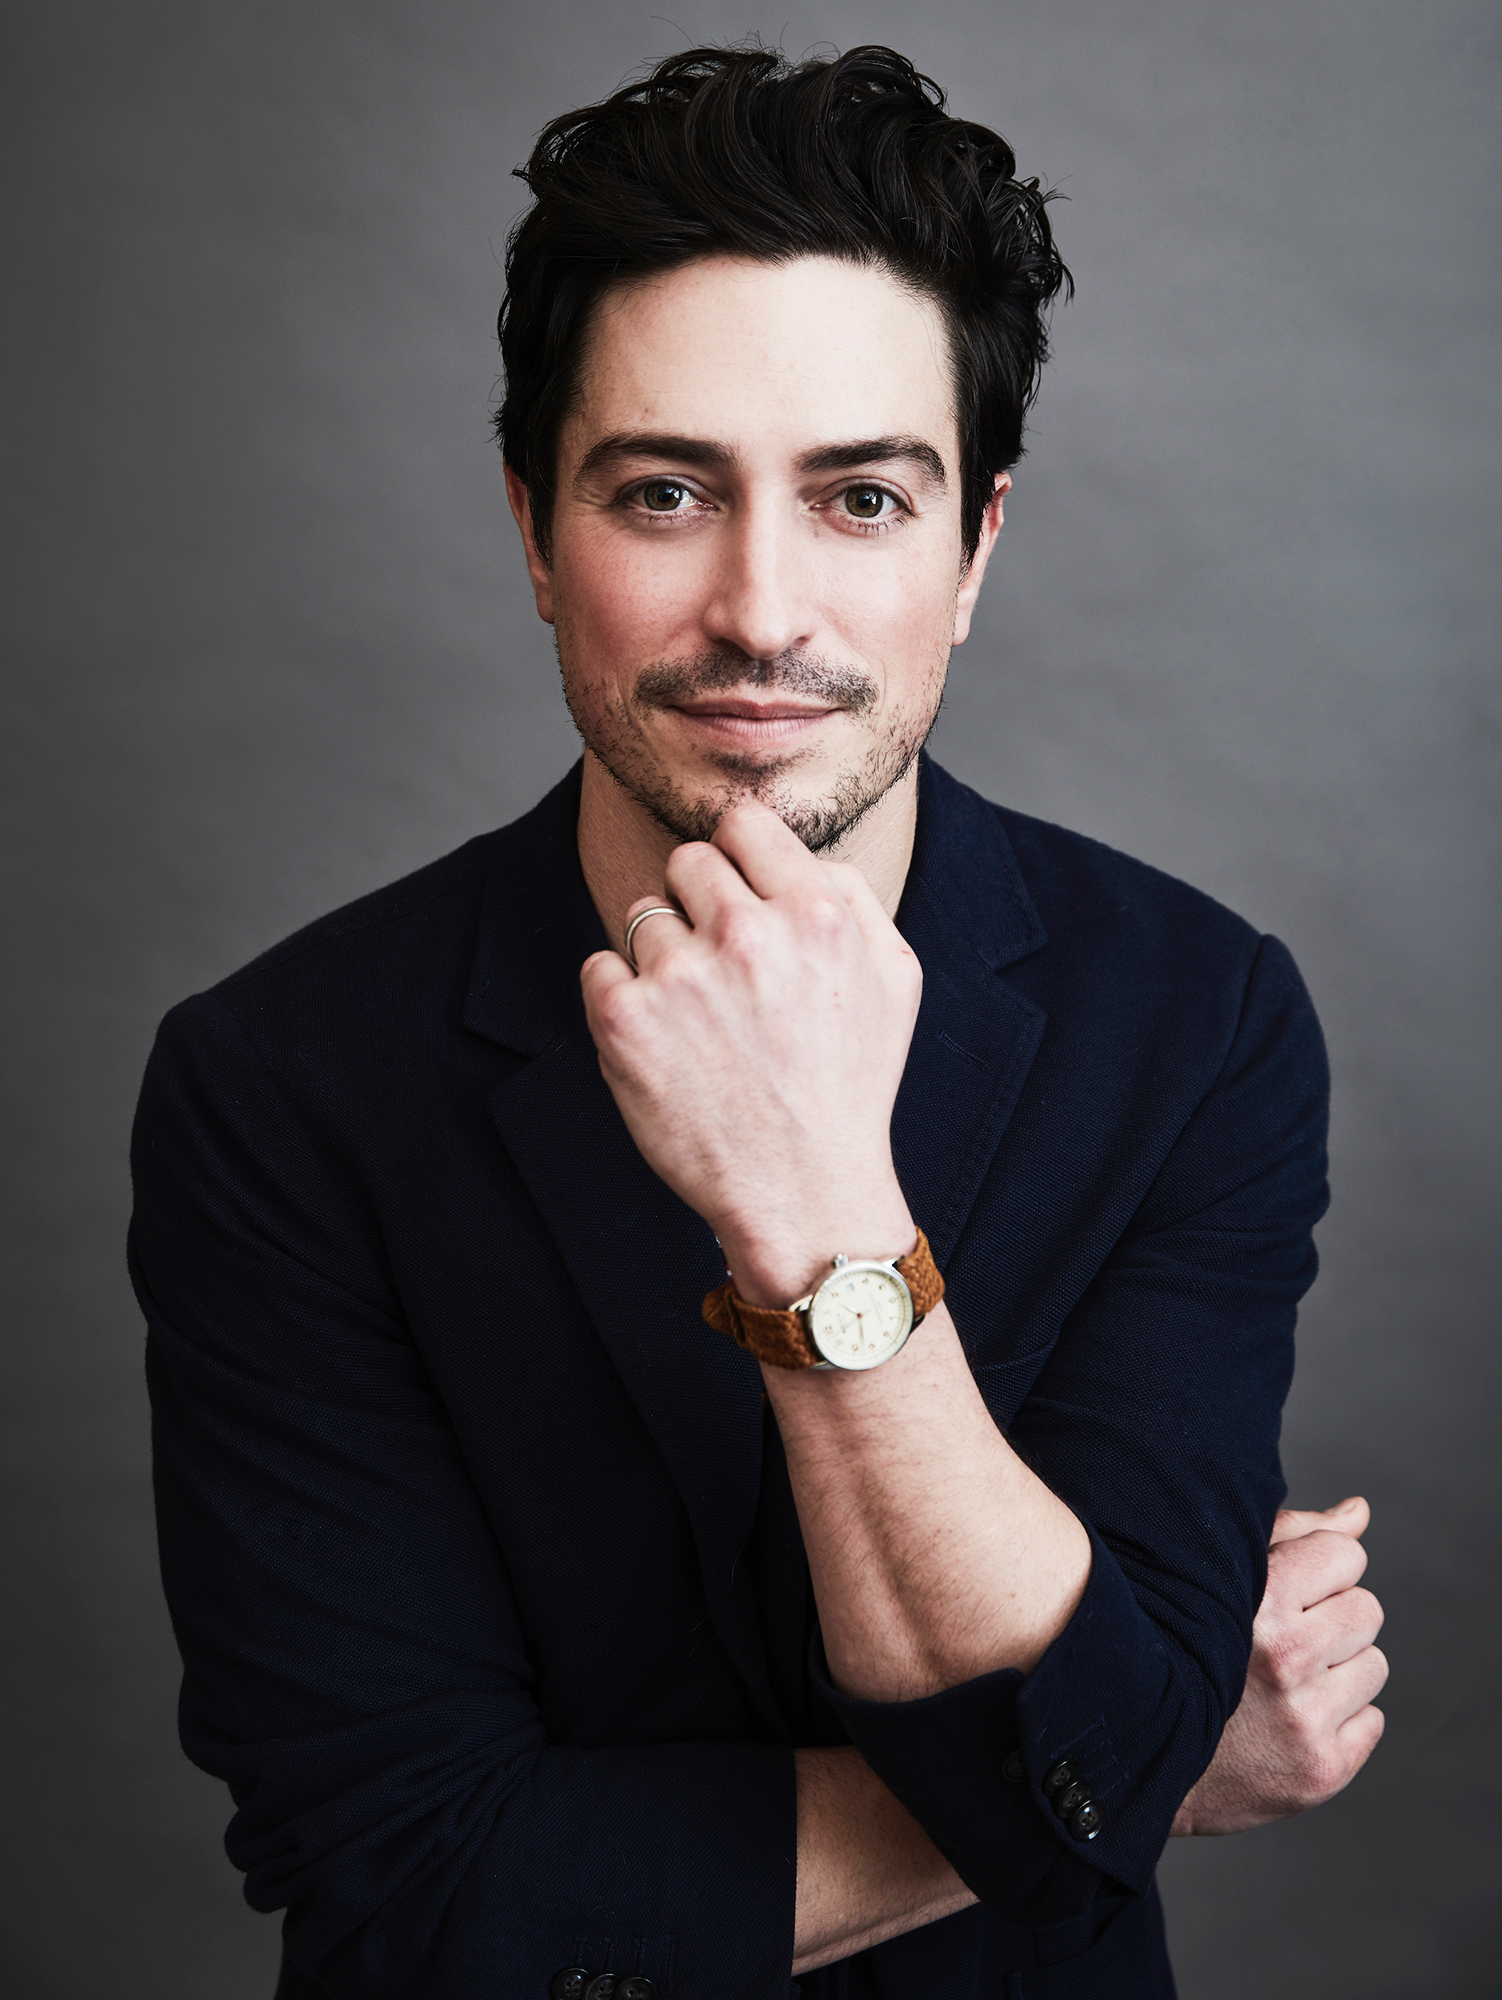 Ben Feldman 25 Things You Don T Know About Me How much does she earn? ben feldman 25 things you don t know